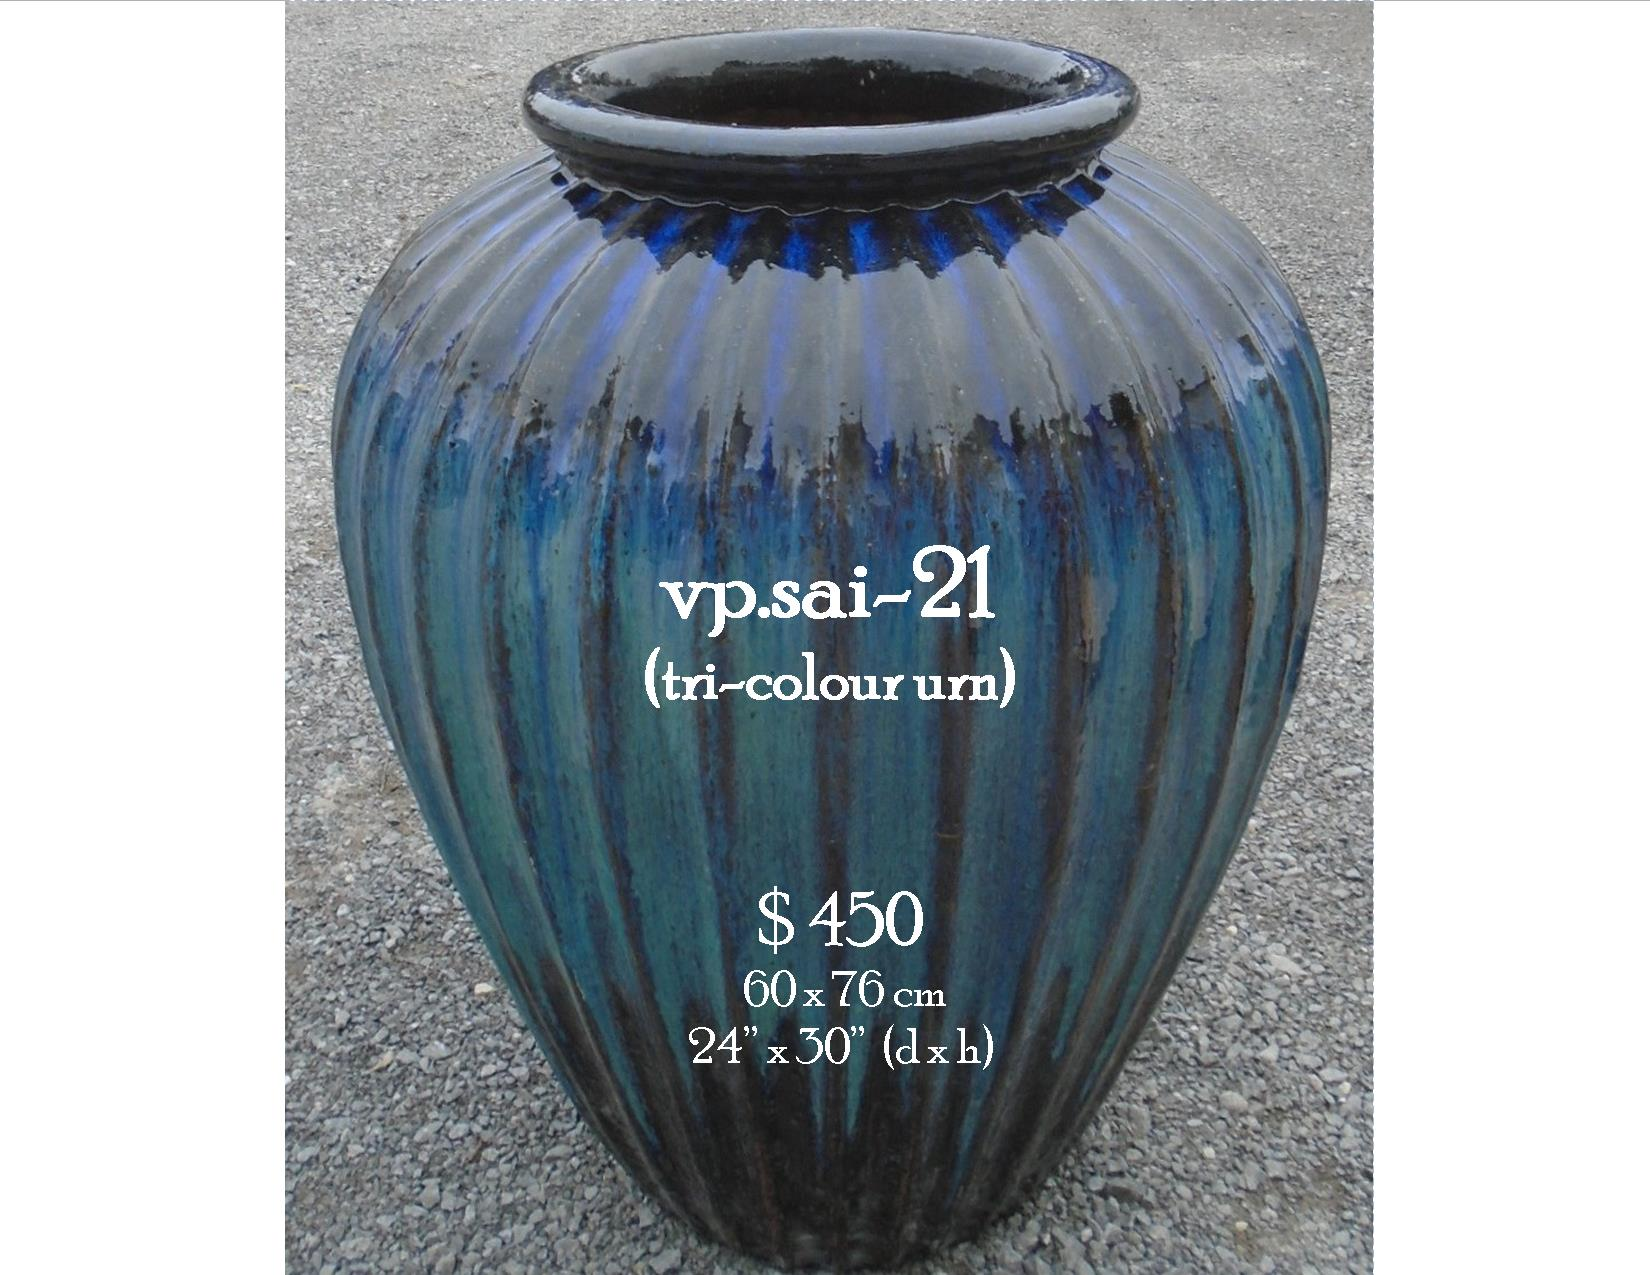 vp.sai-21  tri-colour urn